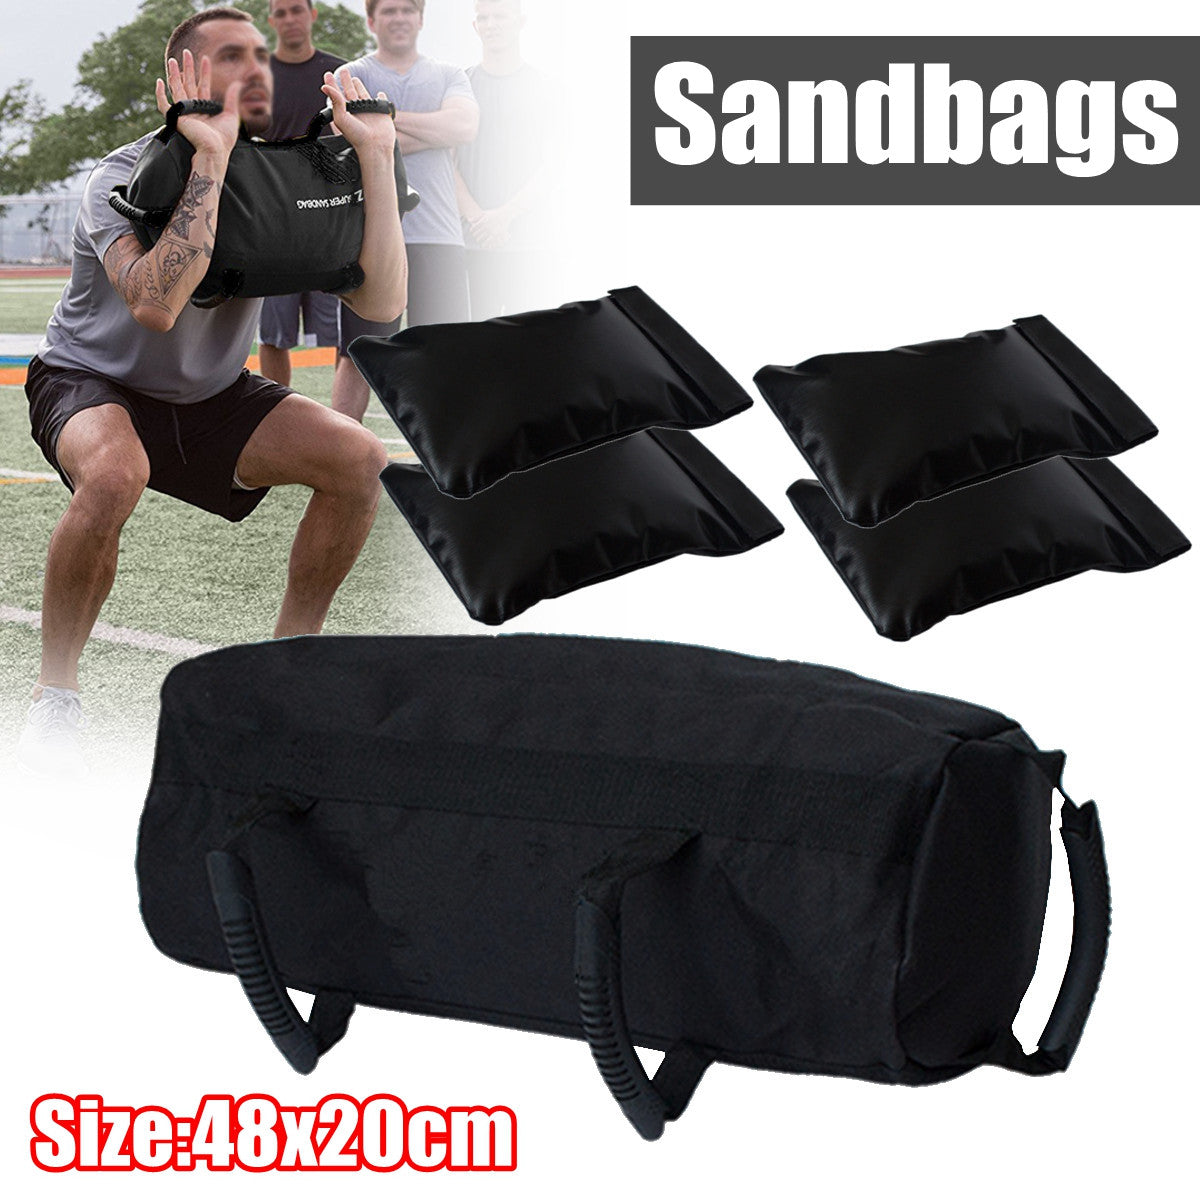 Heavy Duty Sports Training Sandbag - Impact Performance Club